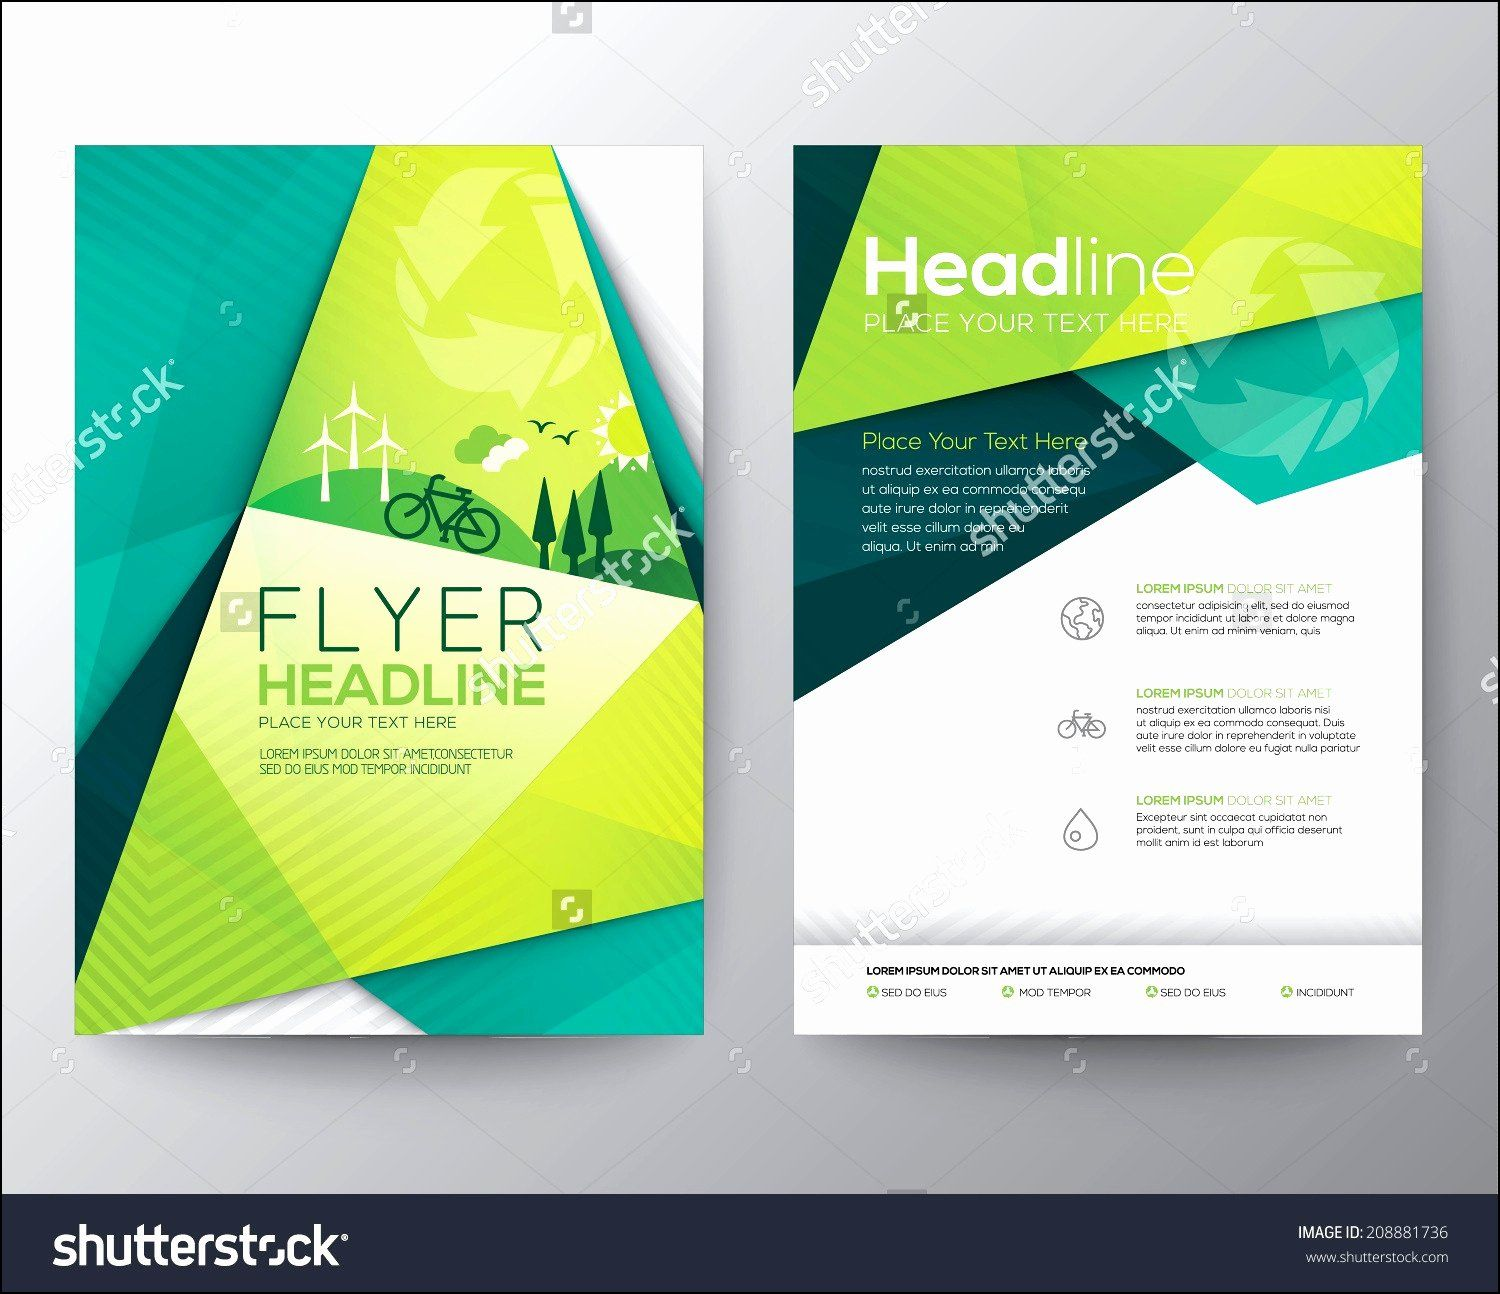 001 Fearsome Free Download Flyer Template Picture  Templates Blank Leaflet Word PsdFull